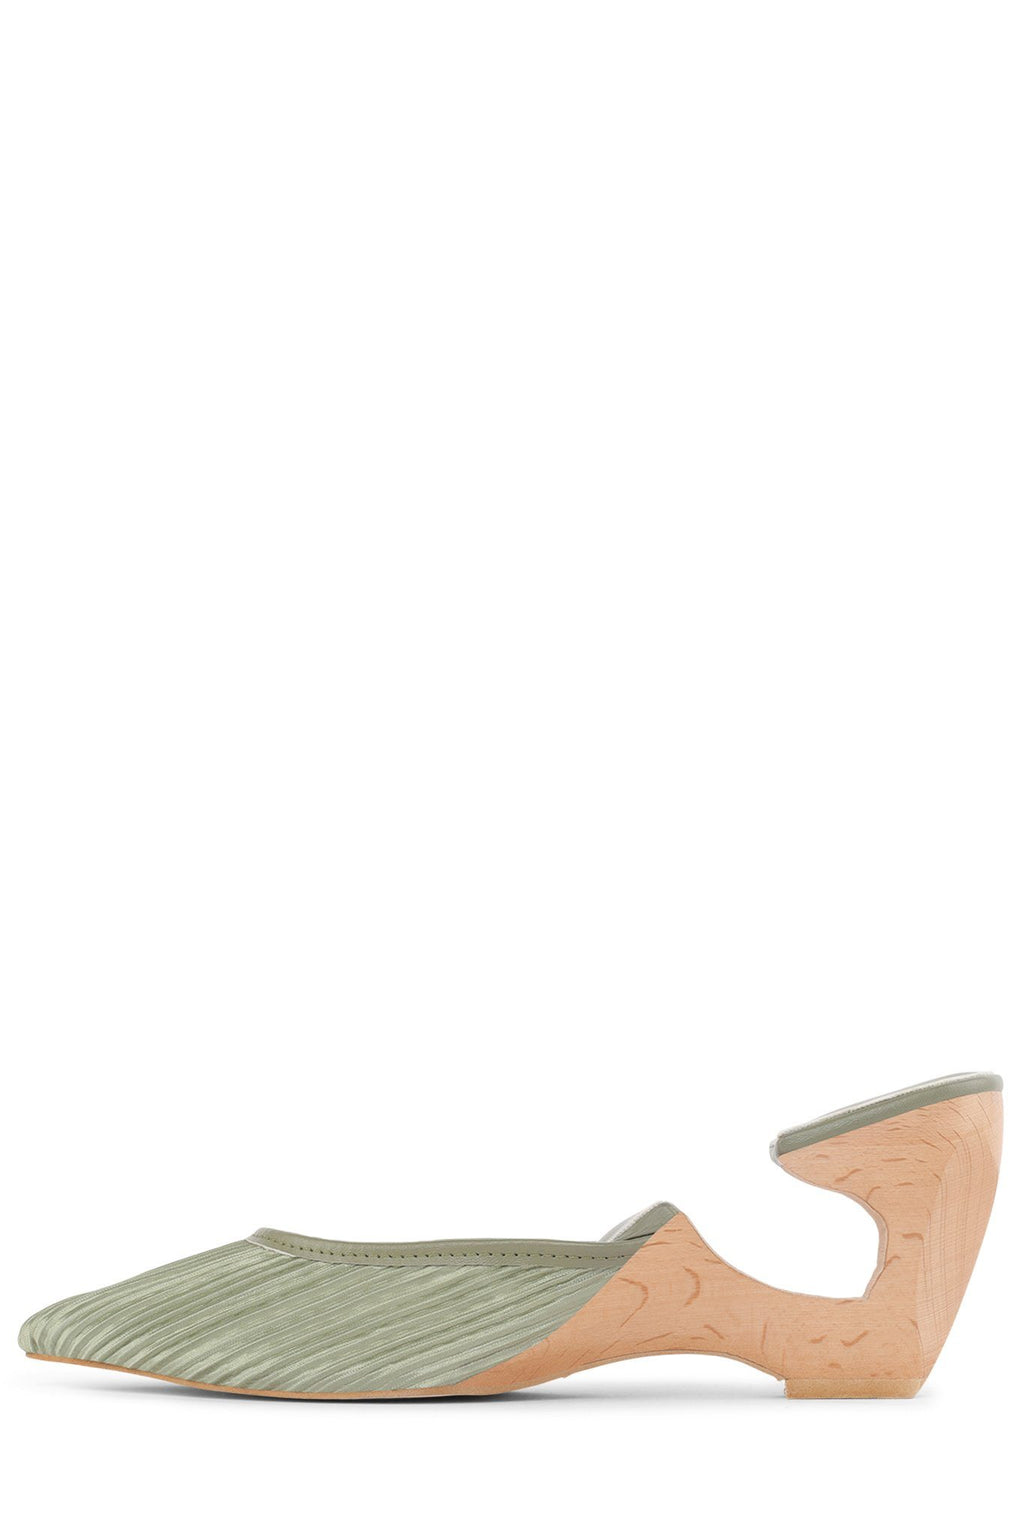 SPHERIC Heeled Mule HS Green Fabric 6